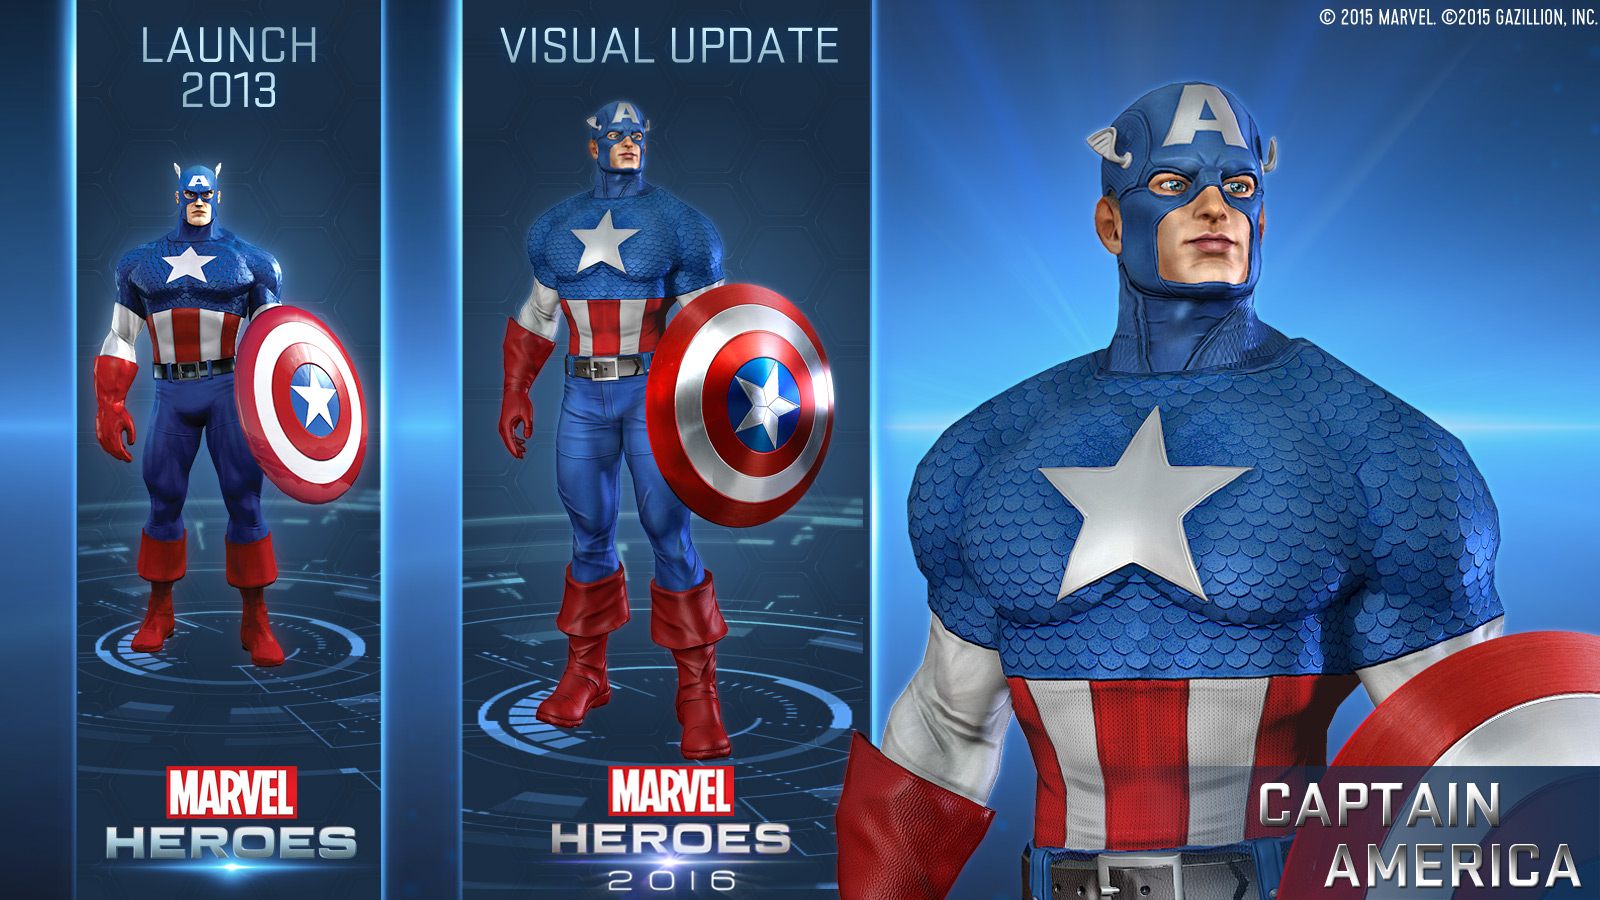 Gazillion discusses the change to Marvel Heroes 2016, 'ANAD